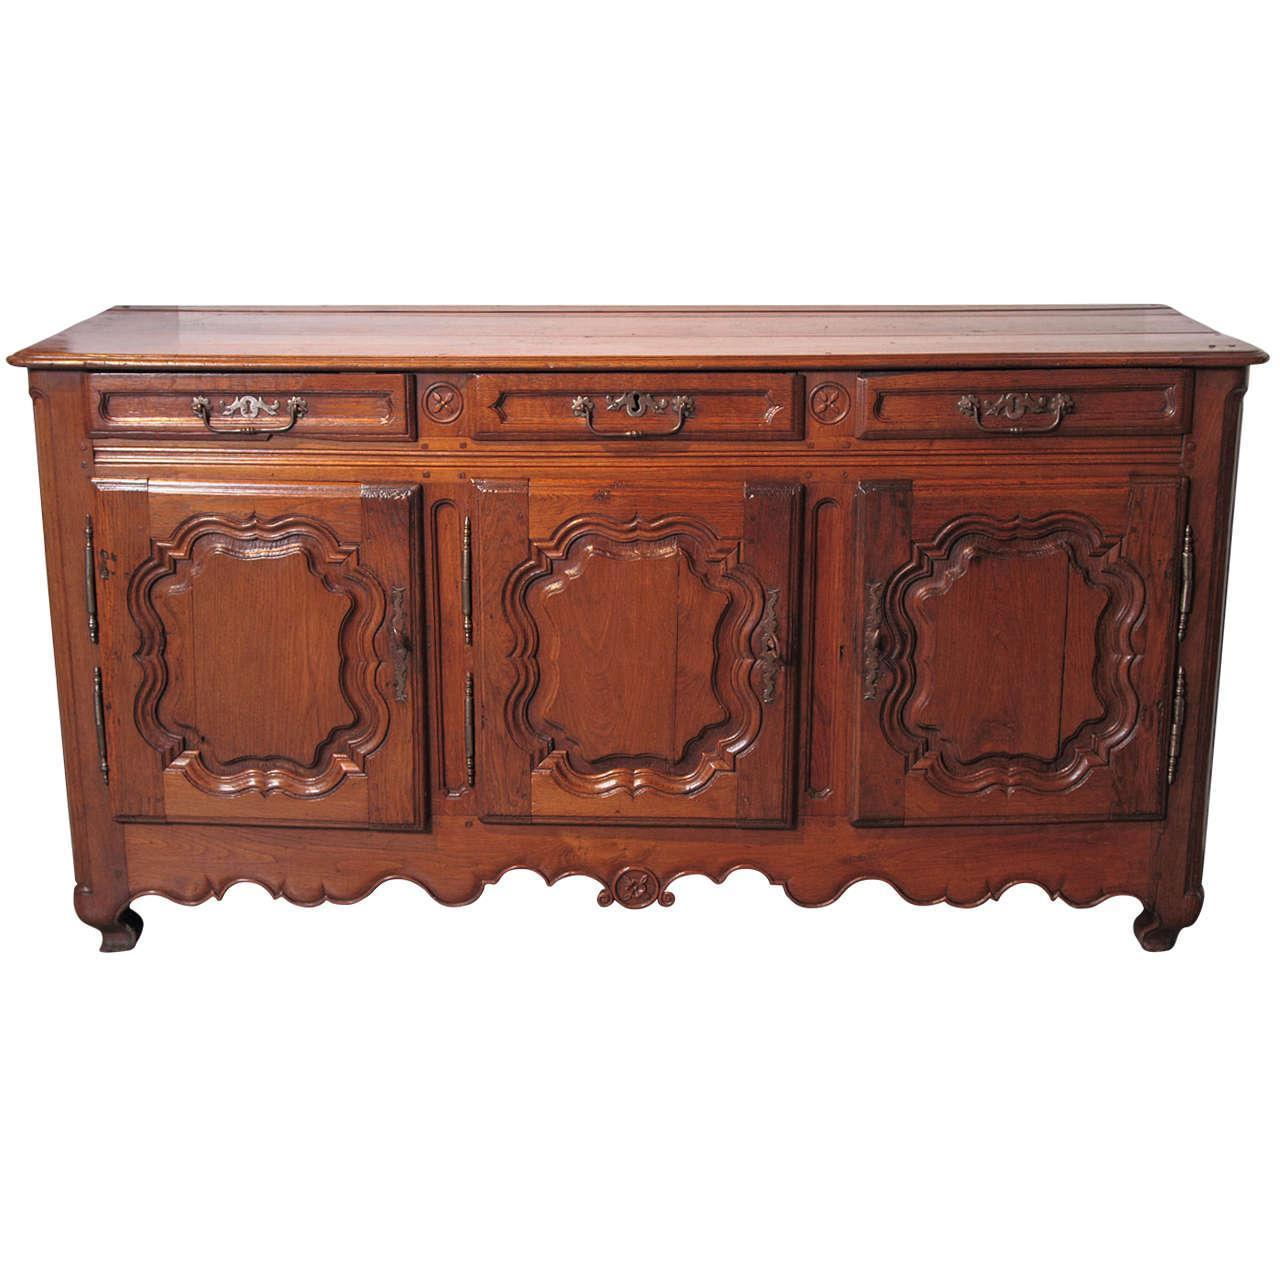 Antique French Enfilade Circa 1850